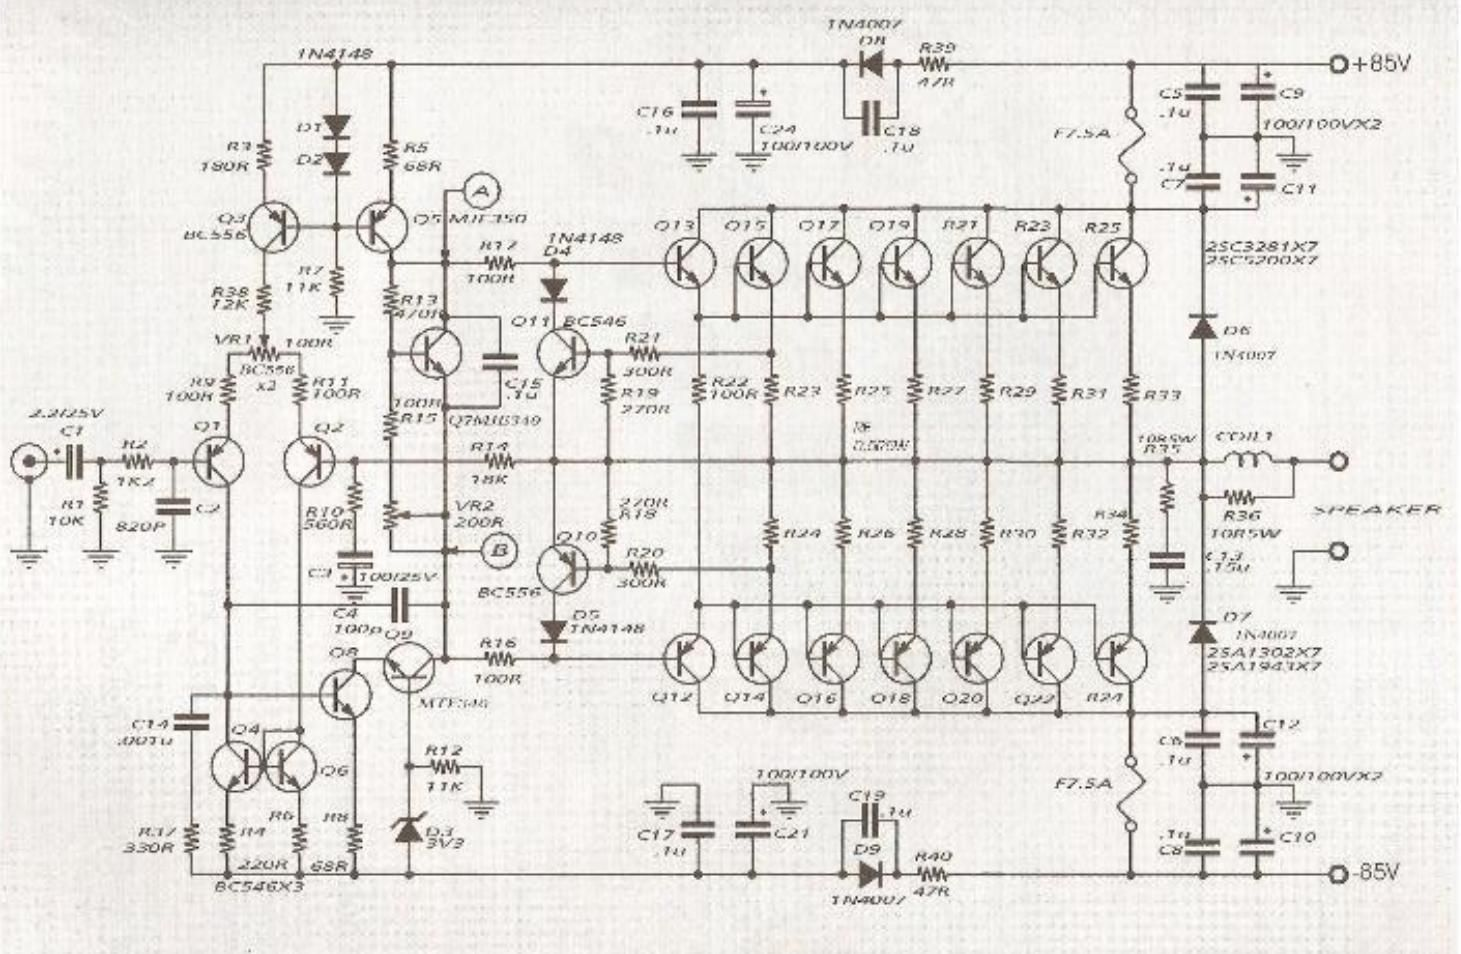 hight resolution of 5000 watts amplifier schematic diagrams wiring diagram description 5000 watt amplifier circuit diagram pdf 5000 watts amplifier circuit diagrams